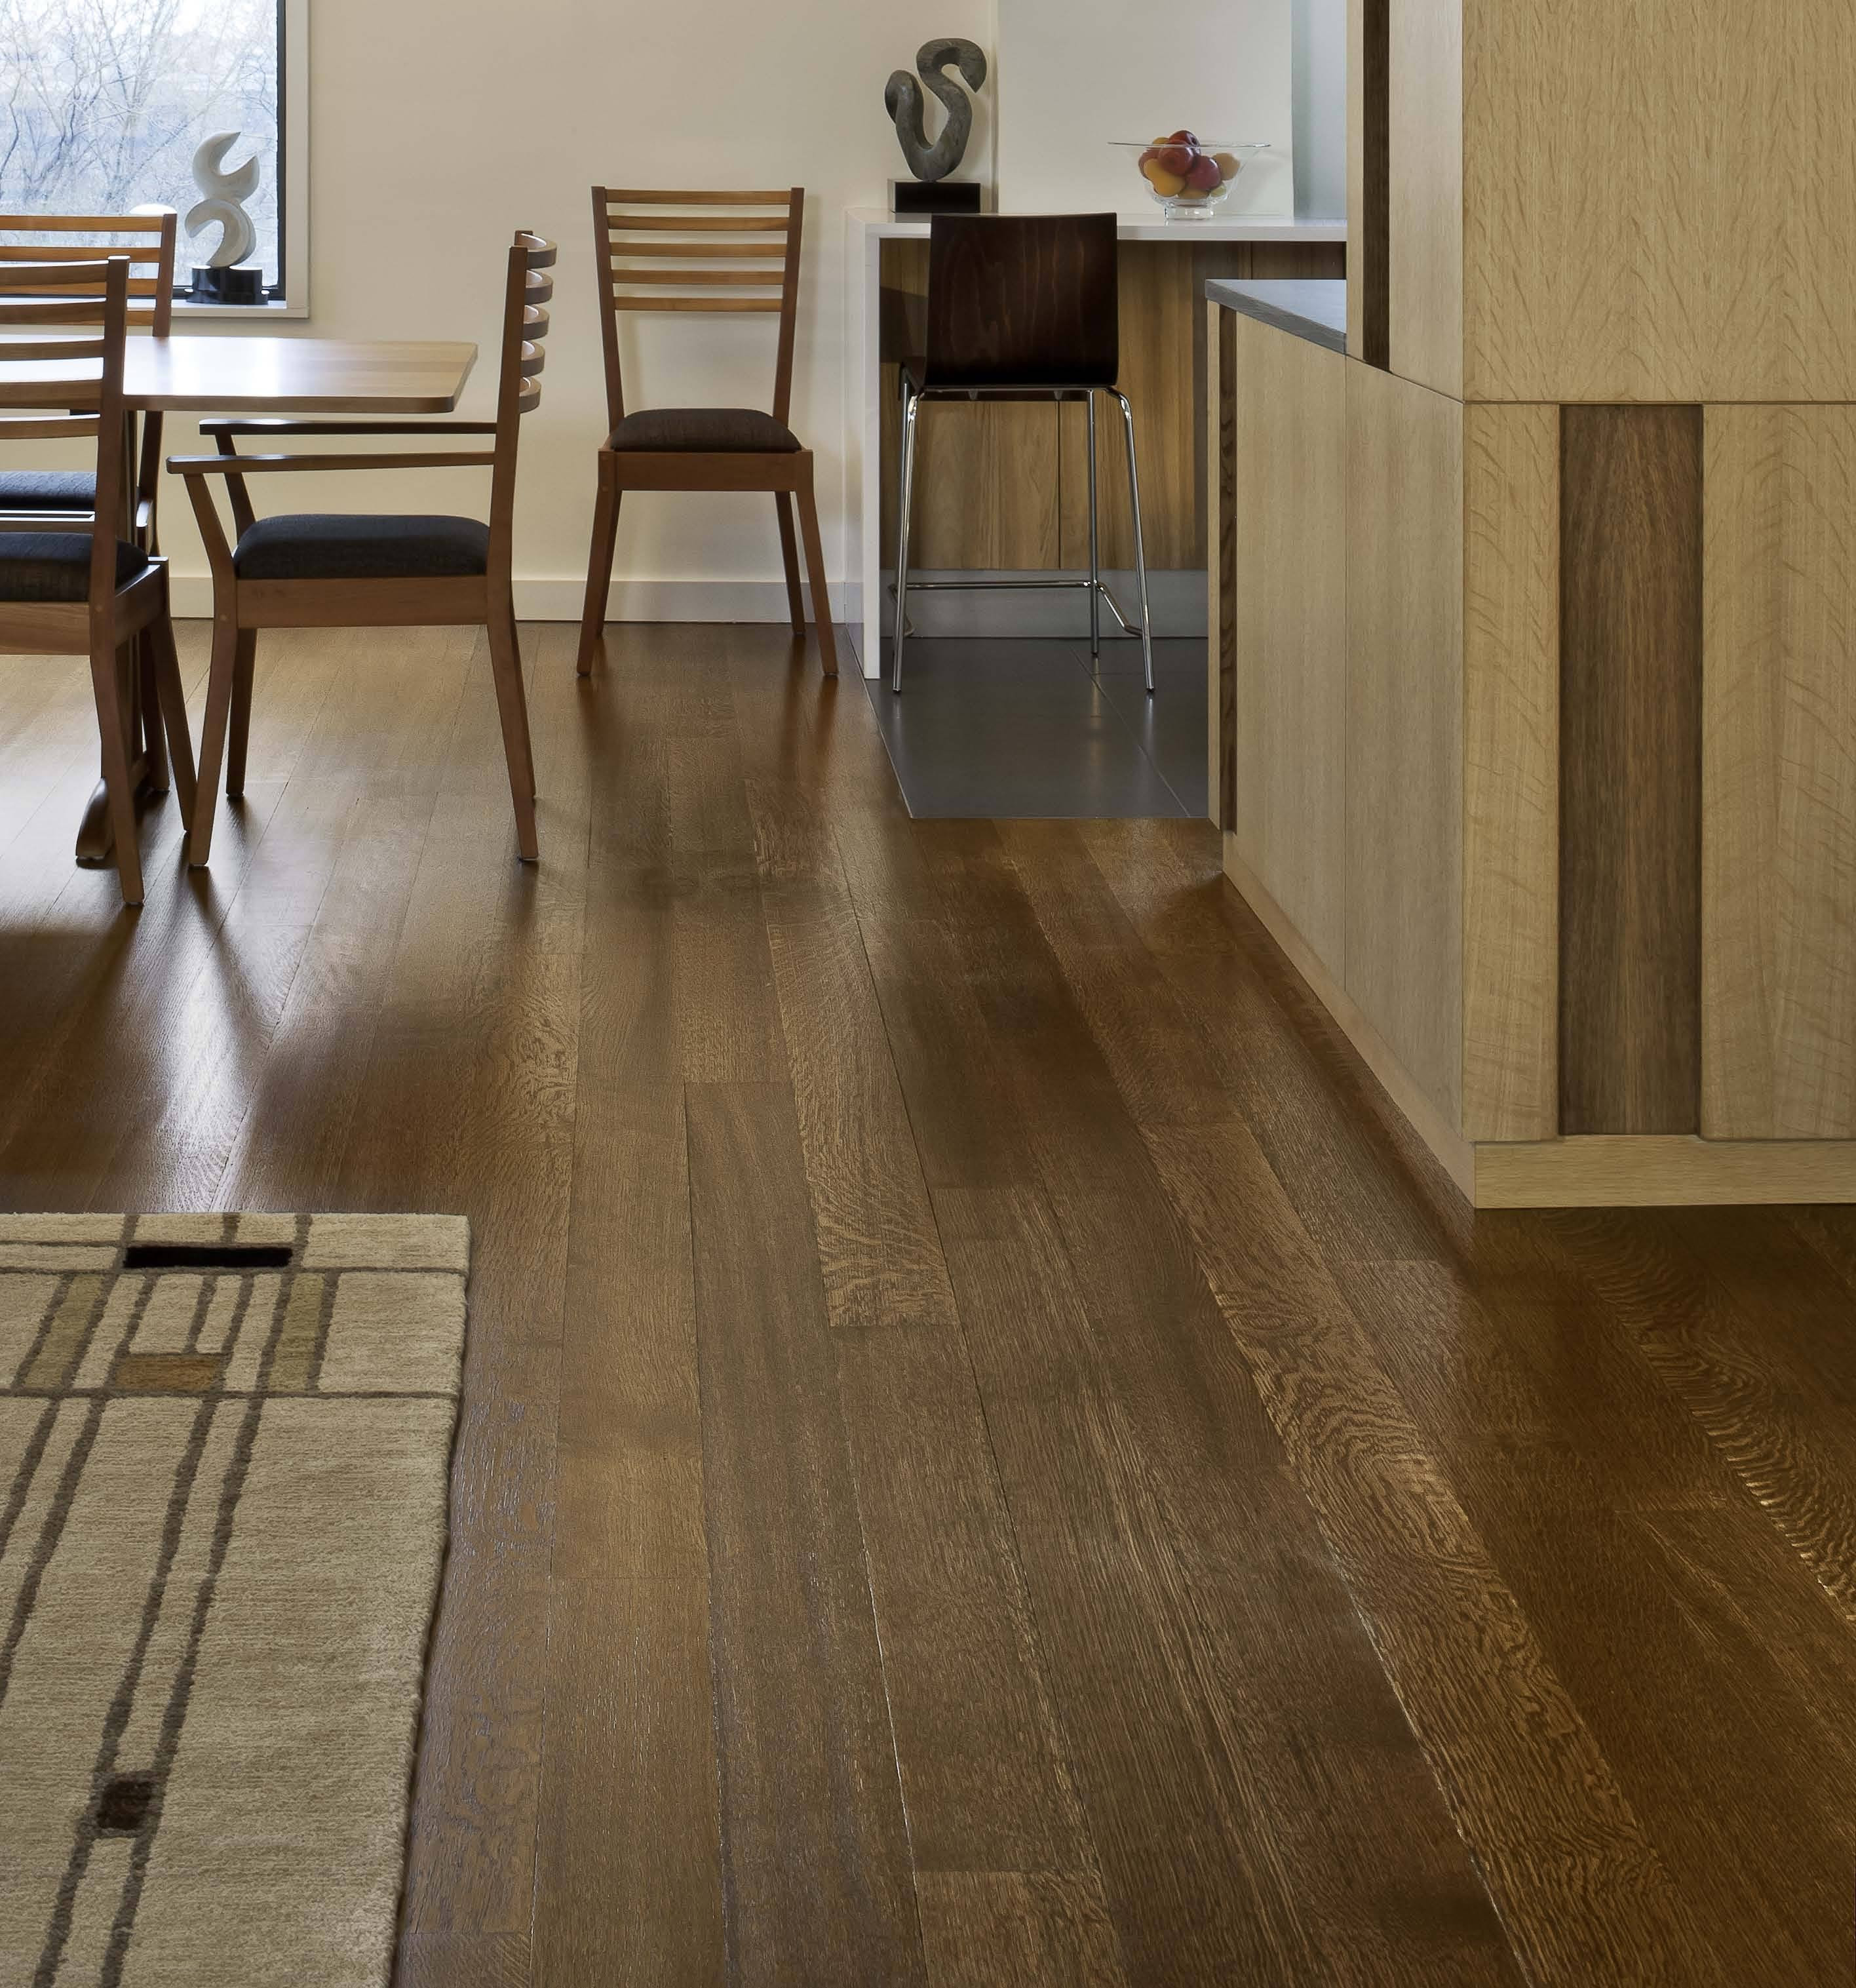 how to sand and refinish hardwood floors yourself of find the best cheap hardwood flooring near me trends best flooring regarding wood flooring panies near me stock hardwood flooring stores near me unique 11 best od floors